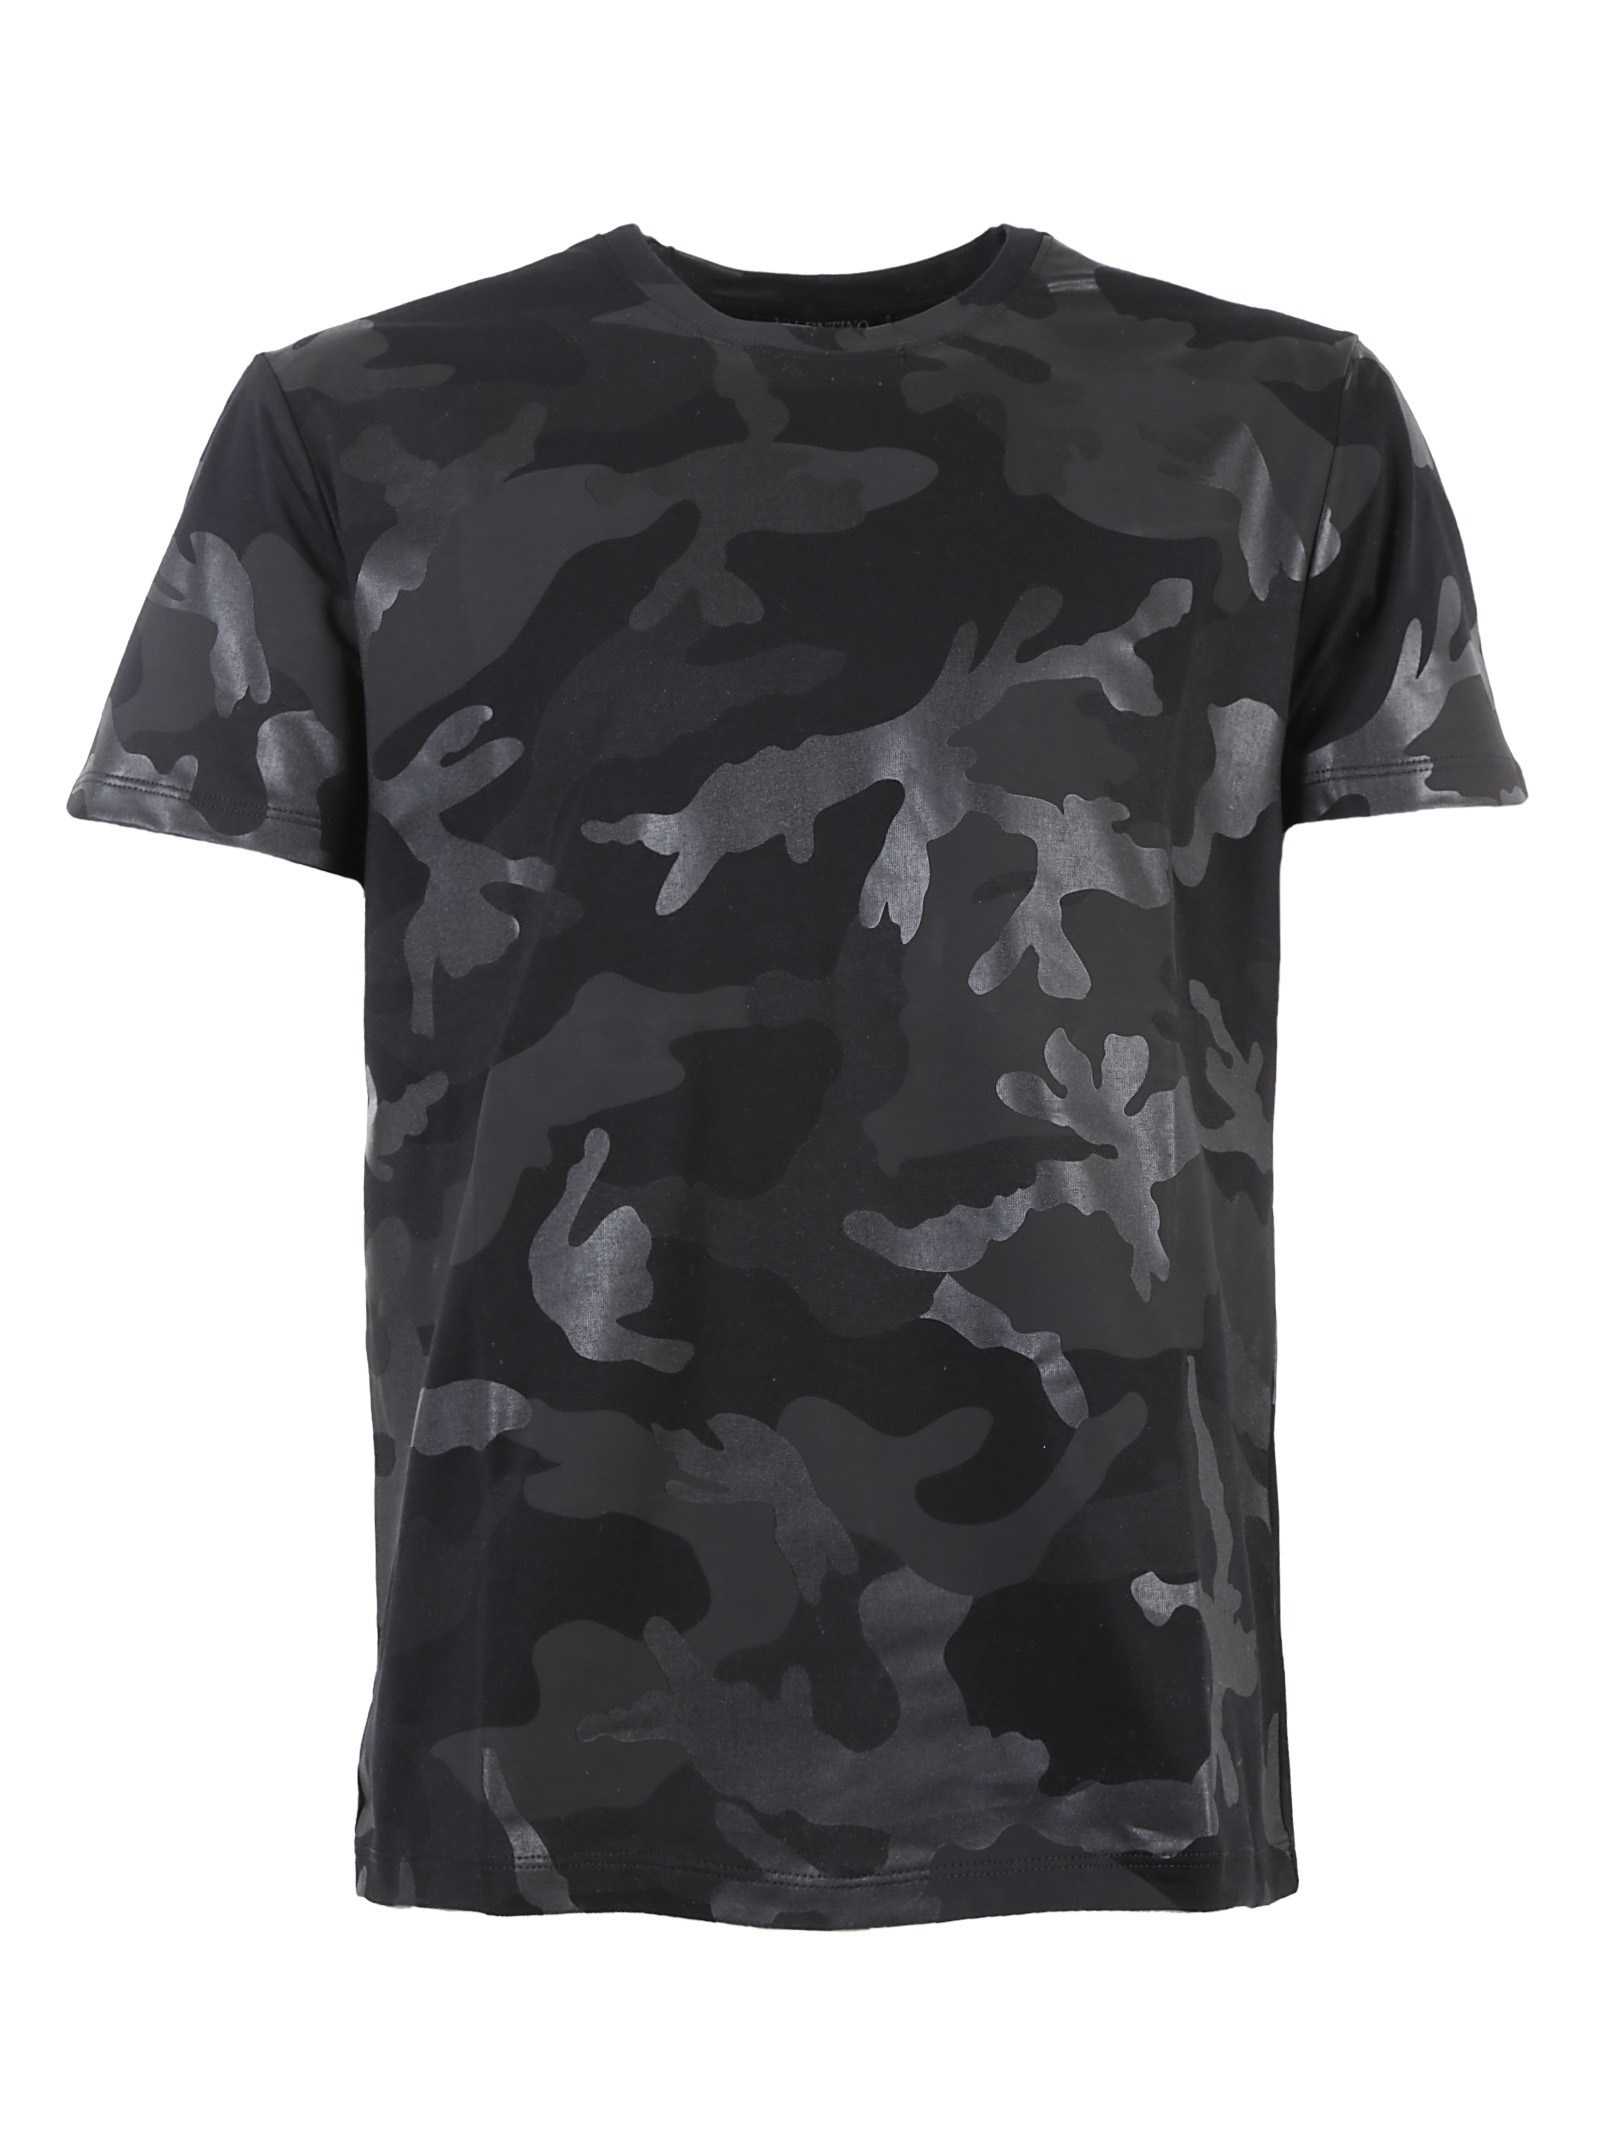 Valentino Tonal Camouflage T Shirt In Gray For Men Black